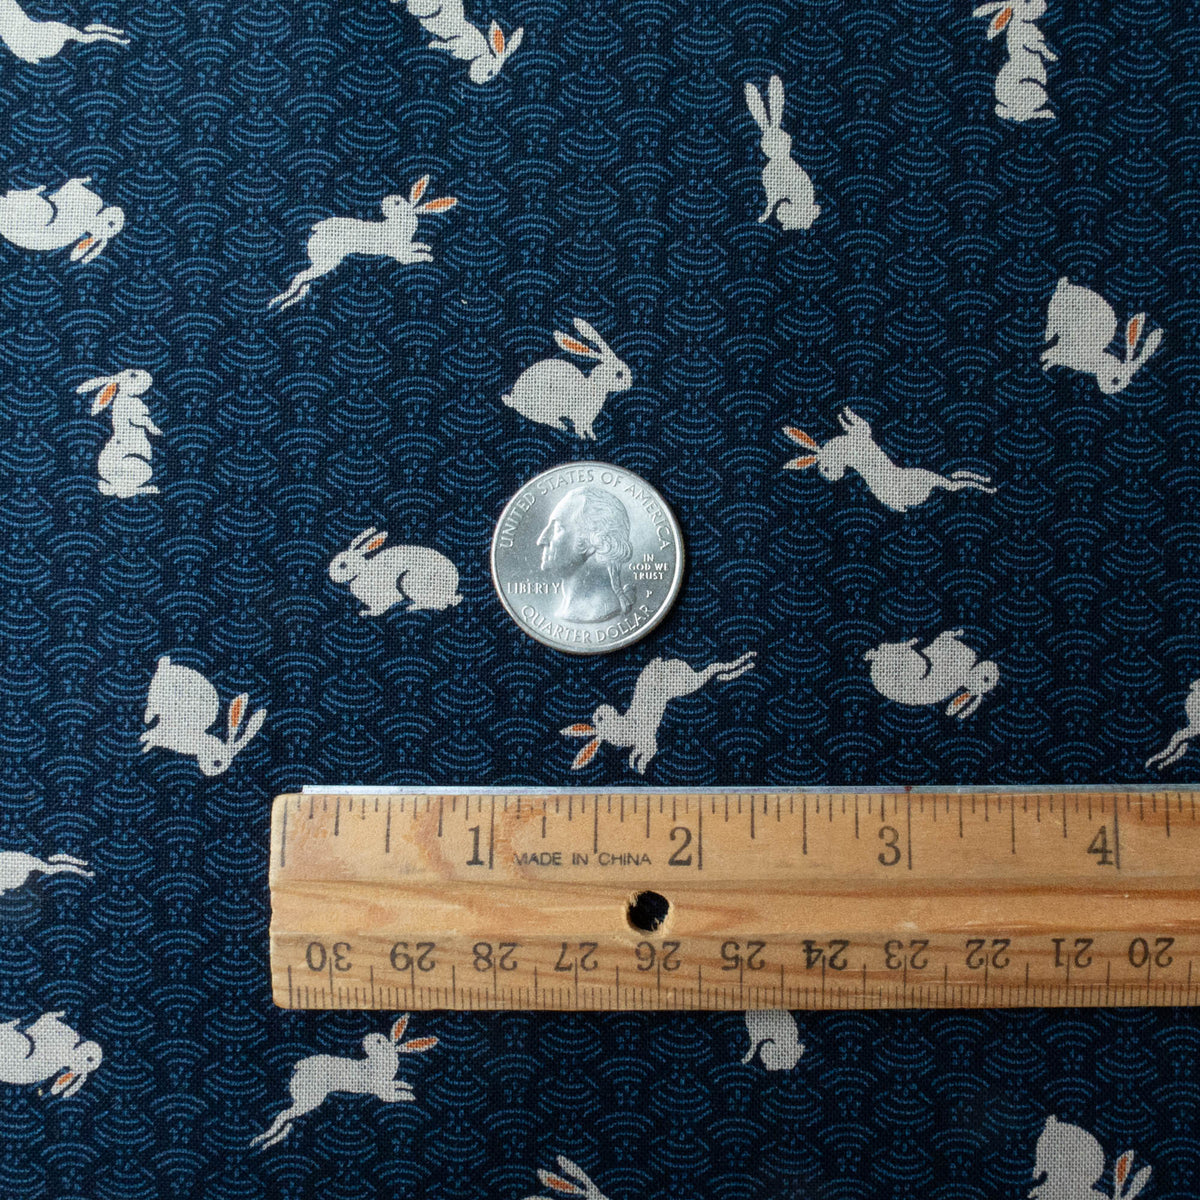 Sevenberry Kasuri : Bunnies on Navy Waves Fabric - Snuggly Monkey